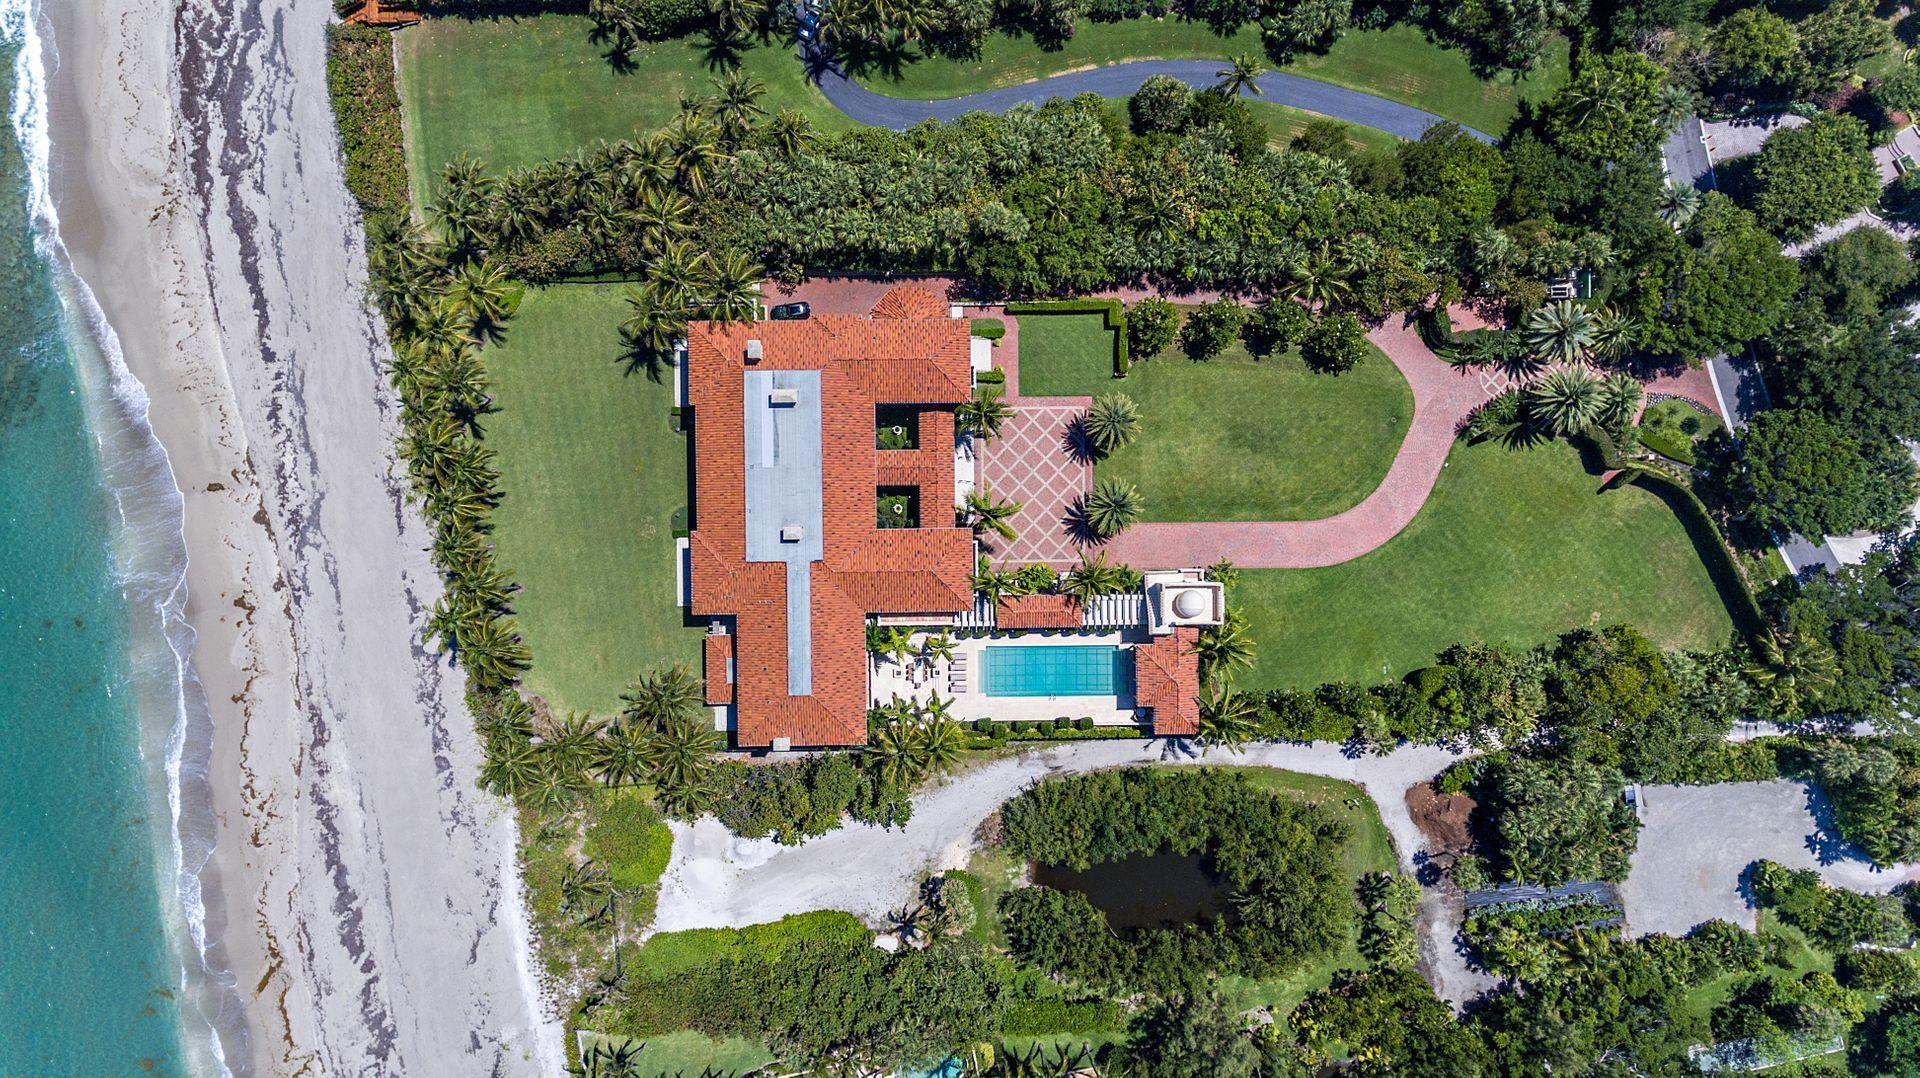 12088 Banyan Road, North Palm Beach, Florida 33408, 9 Bedrooms Bedrooms, ,12 BathroomsBathrooms,Residential,for Sale,Seminole Landing,Banyan,RX-10534489, , , ,for Sale